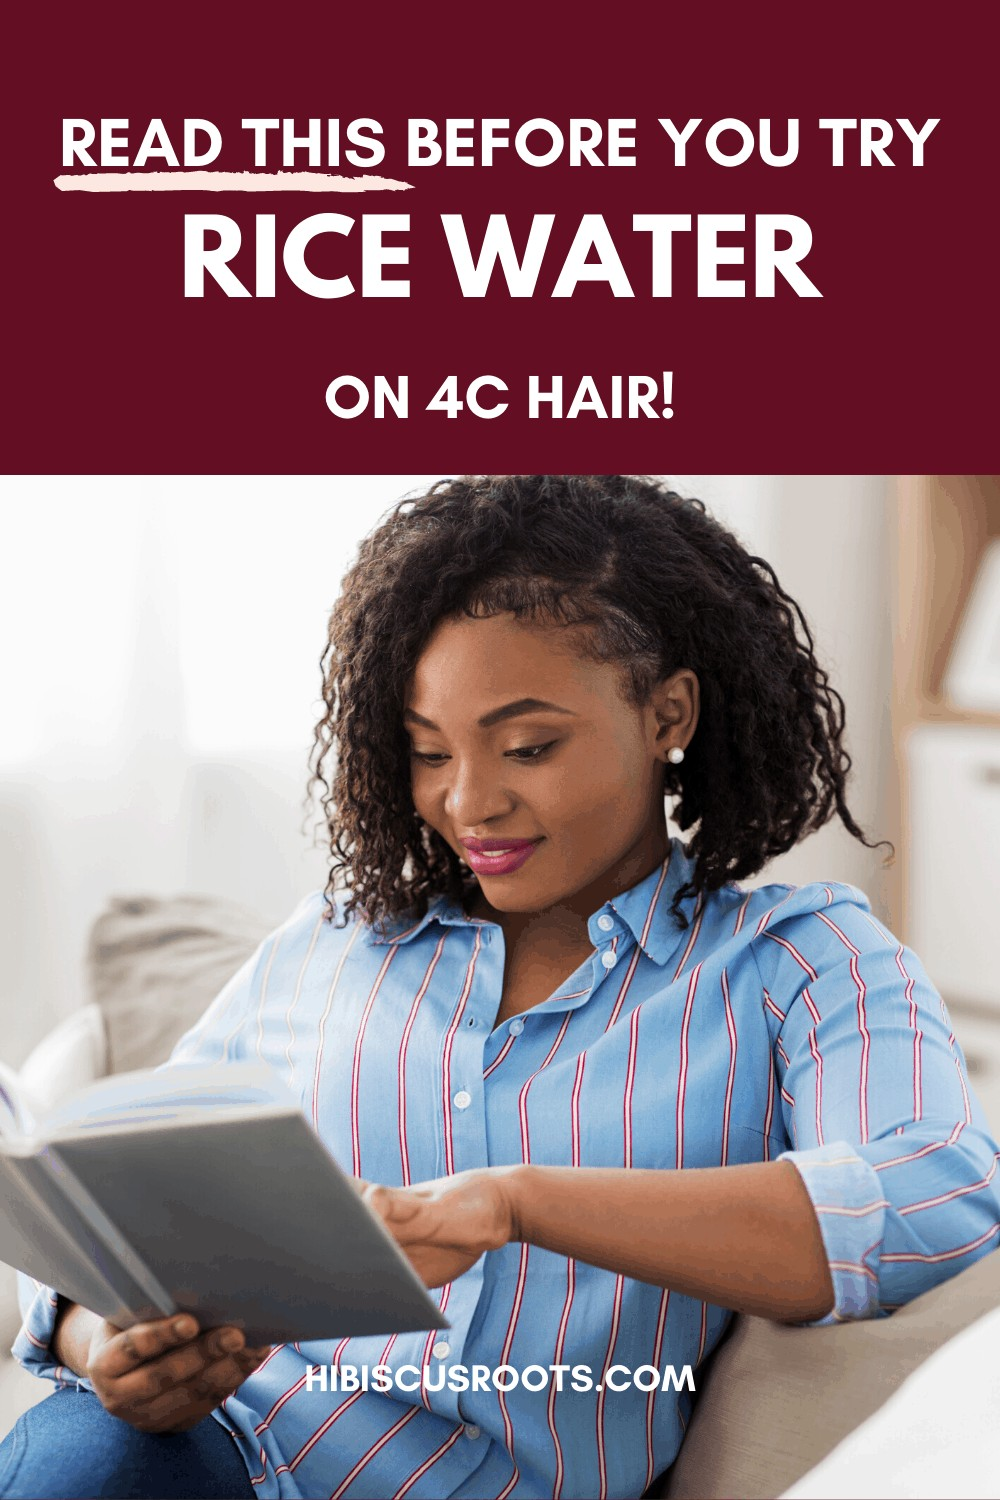 How to Use Rice Water for 4C Hair Growth!